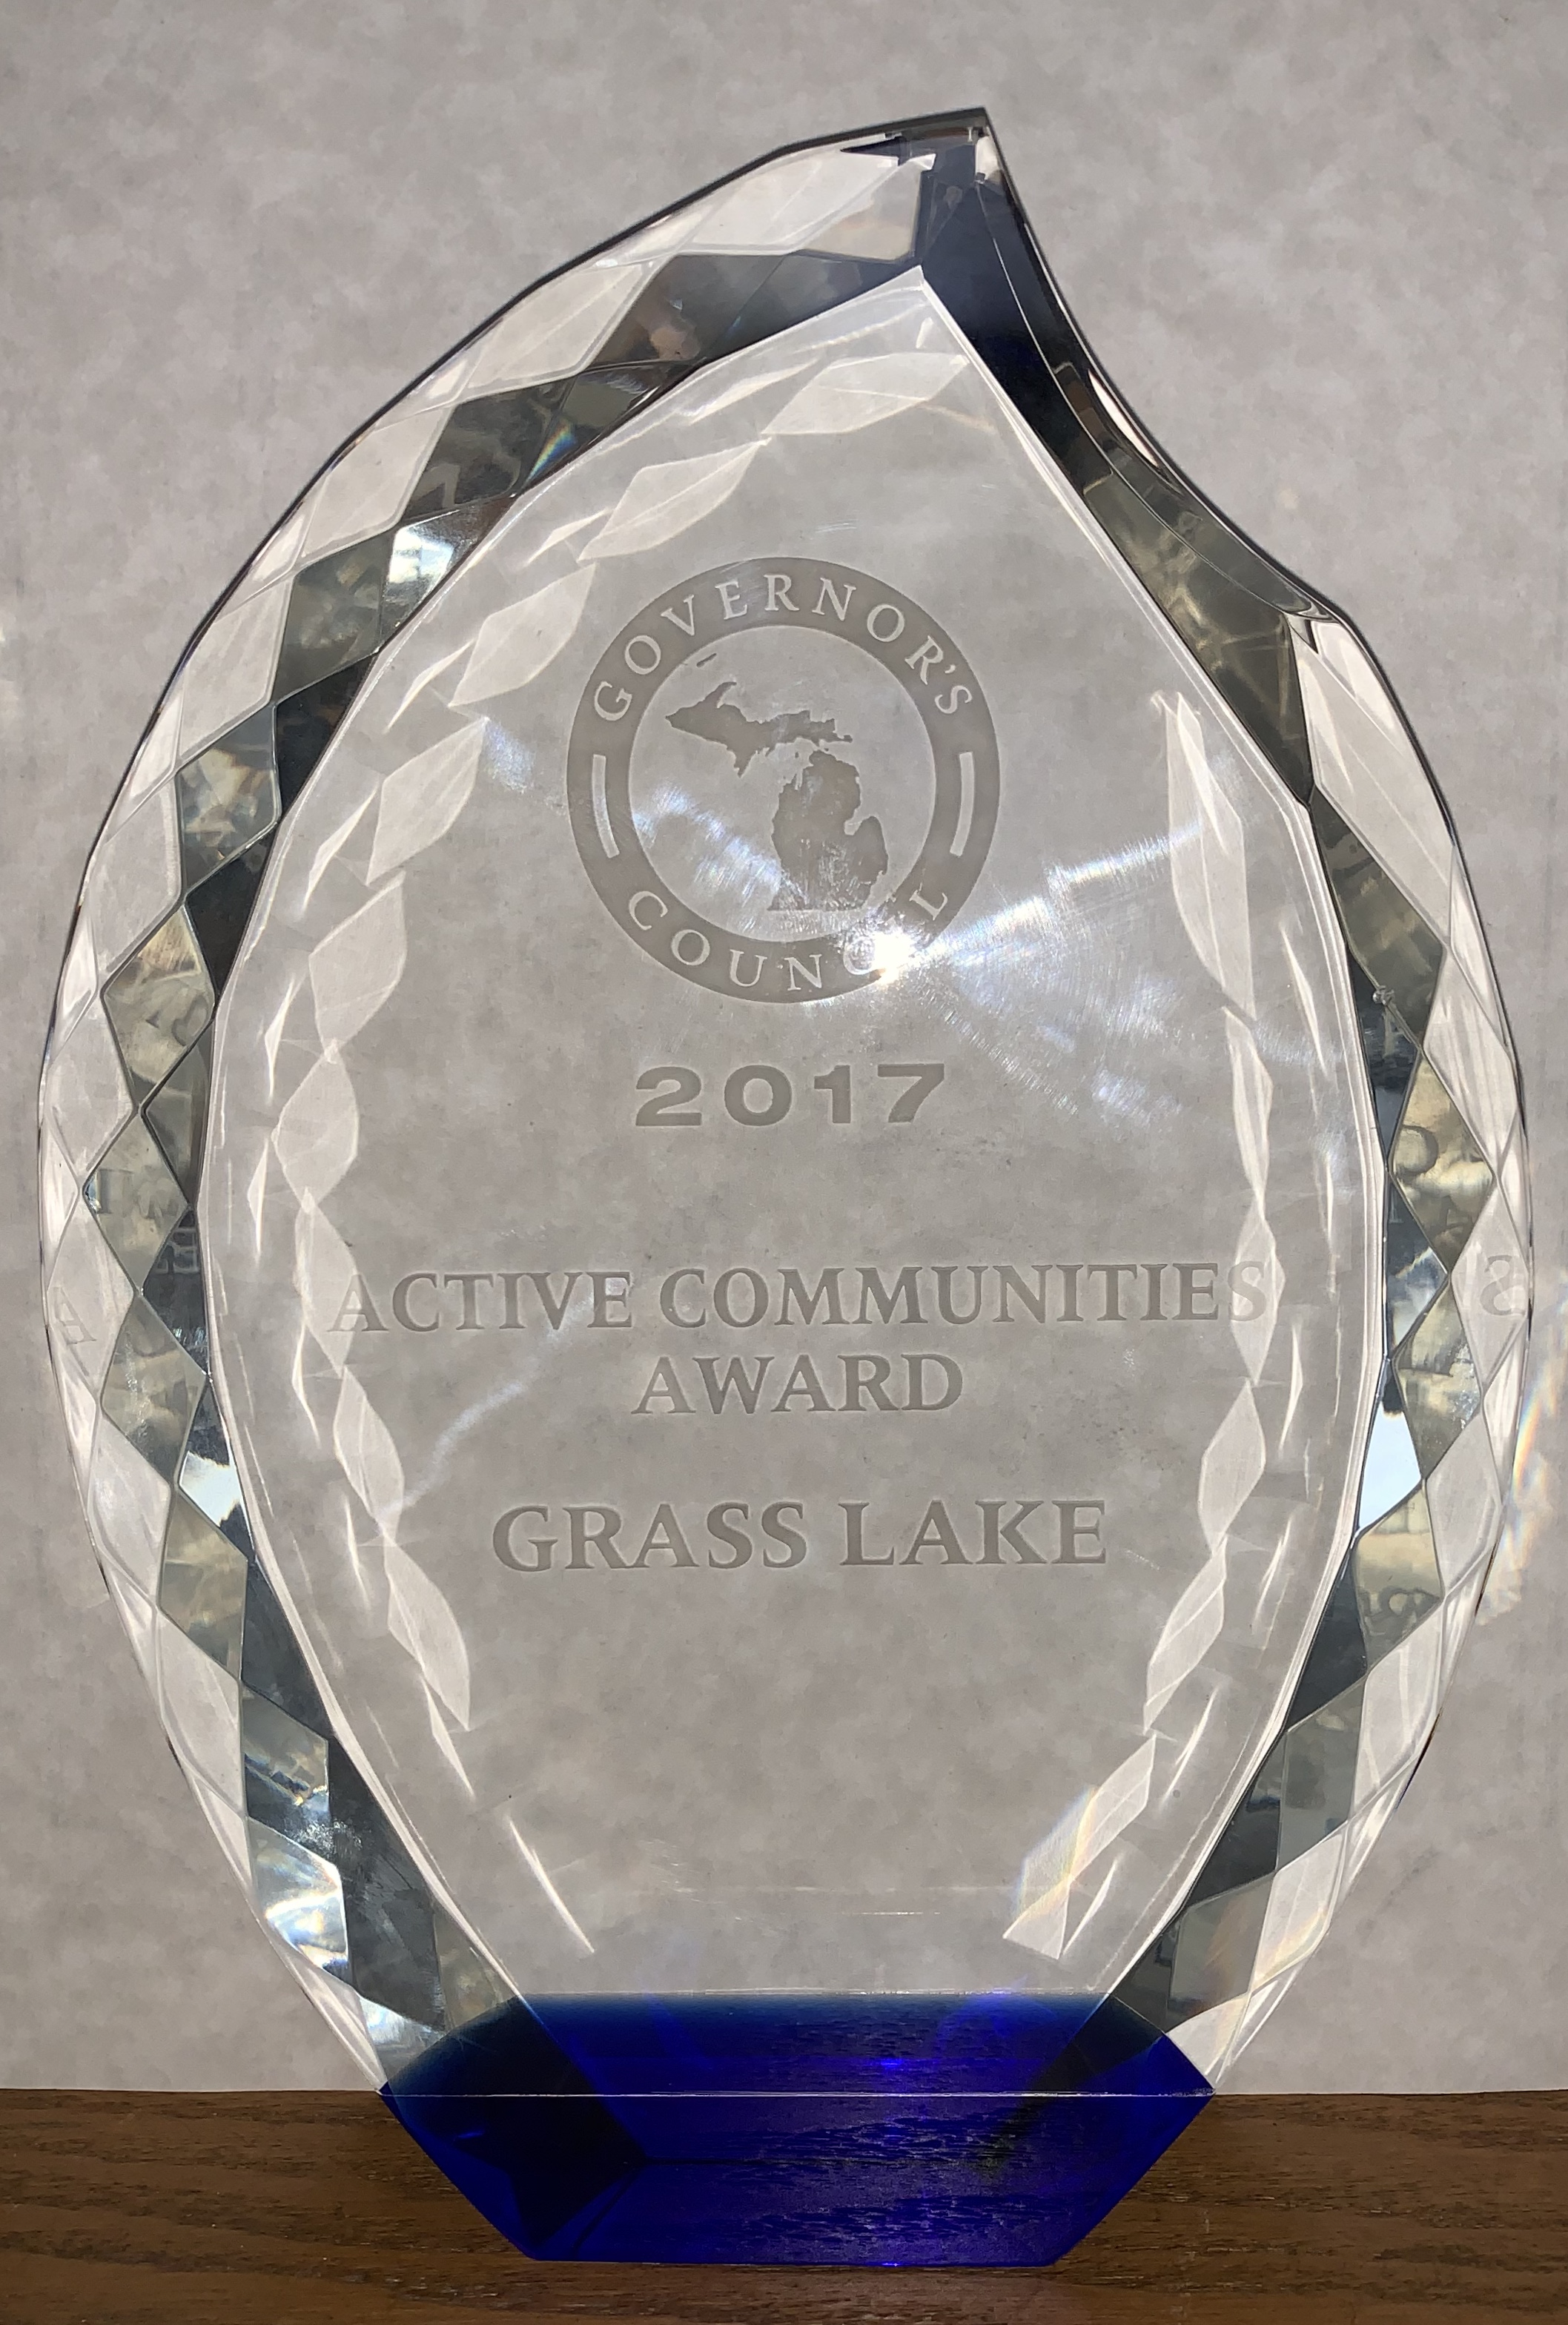 2017 Active Communities Award